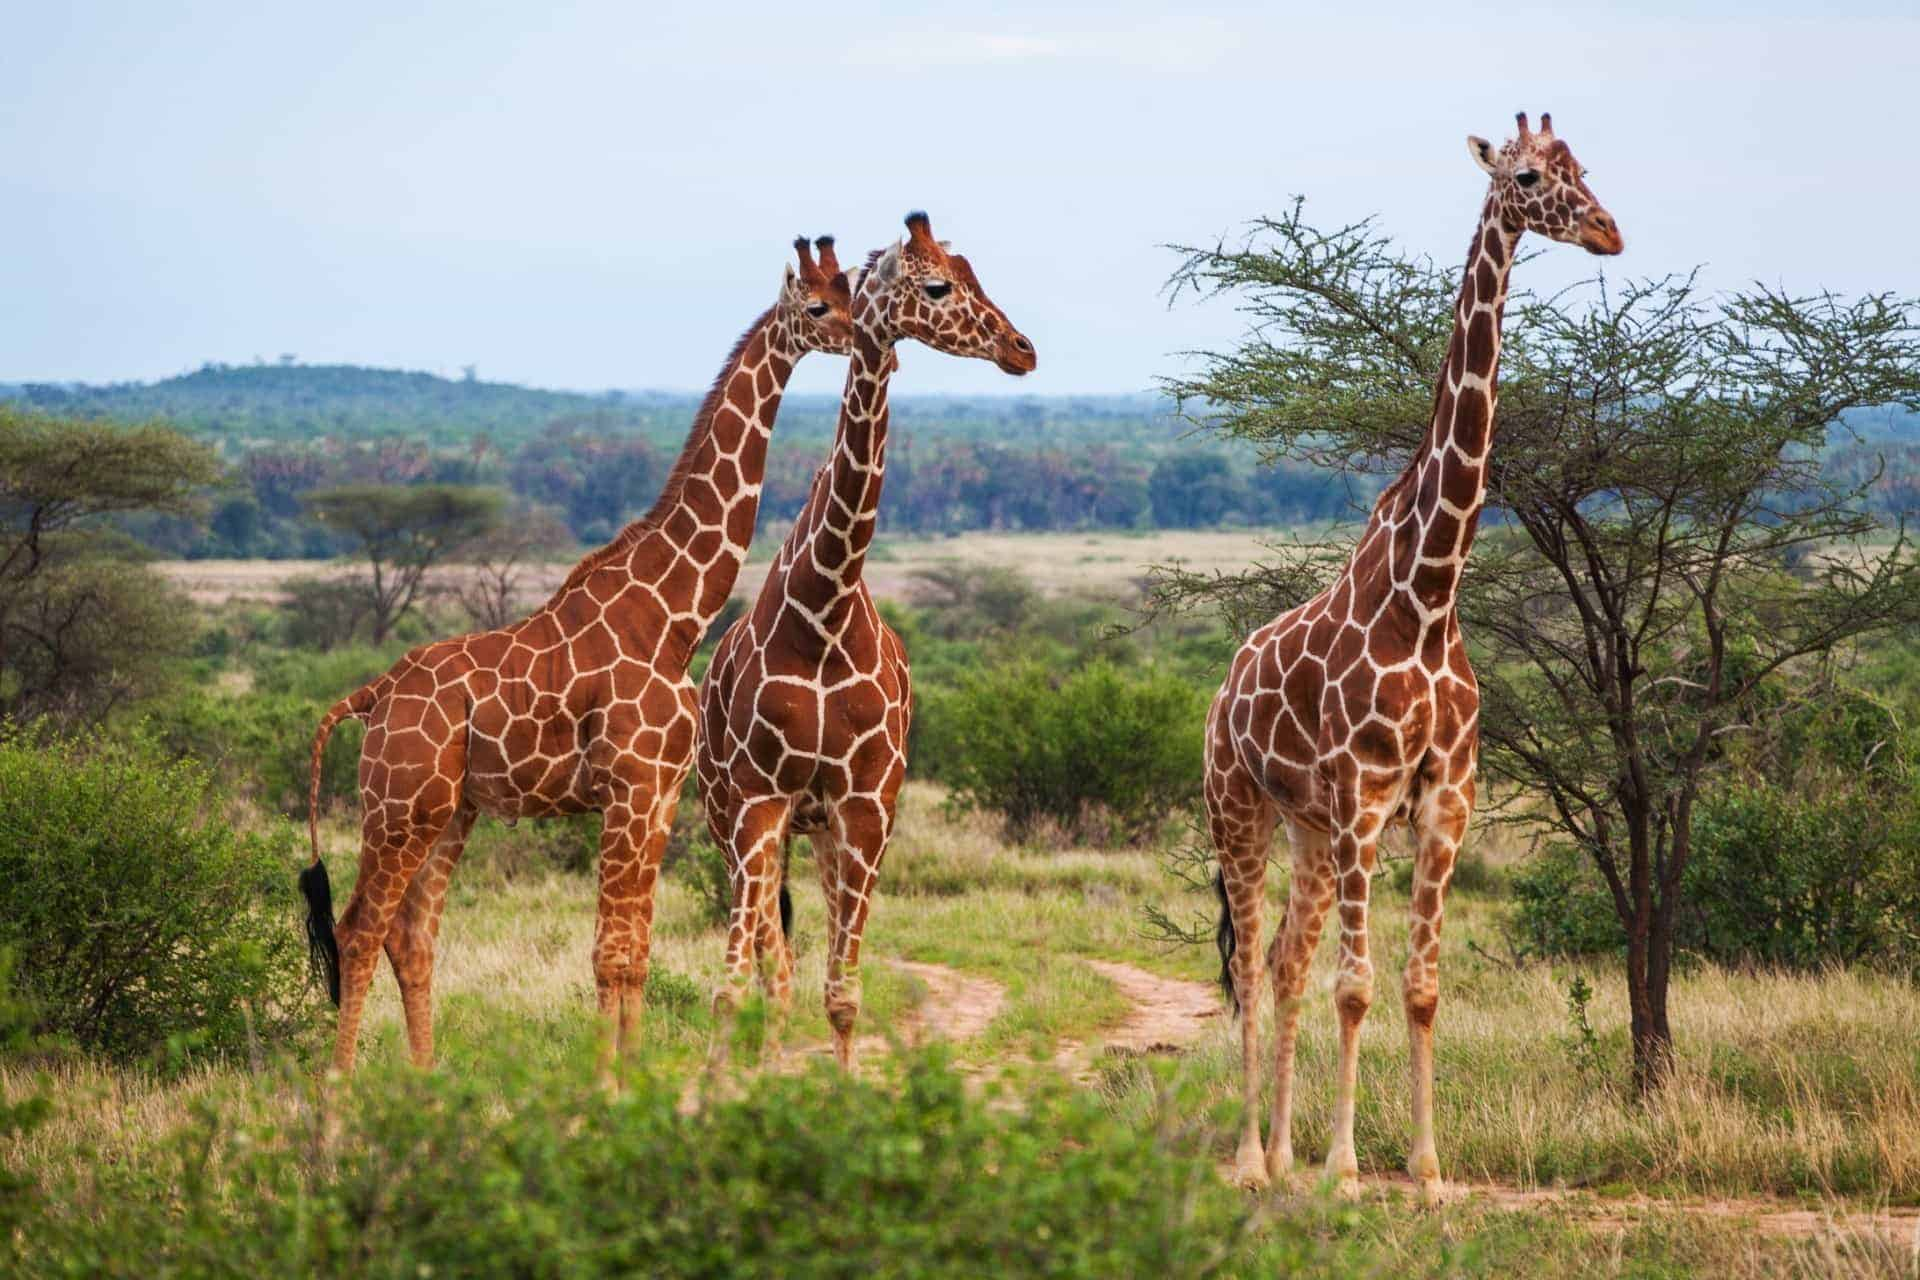 Giraffe among savanna in Africa -